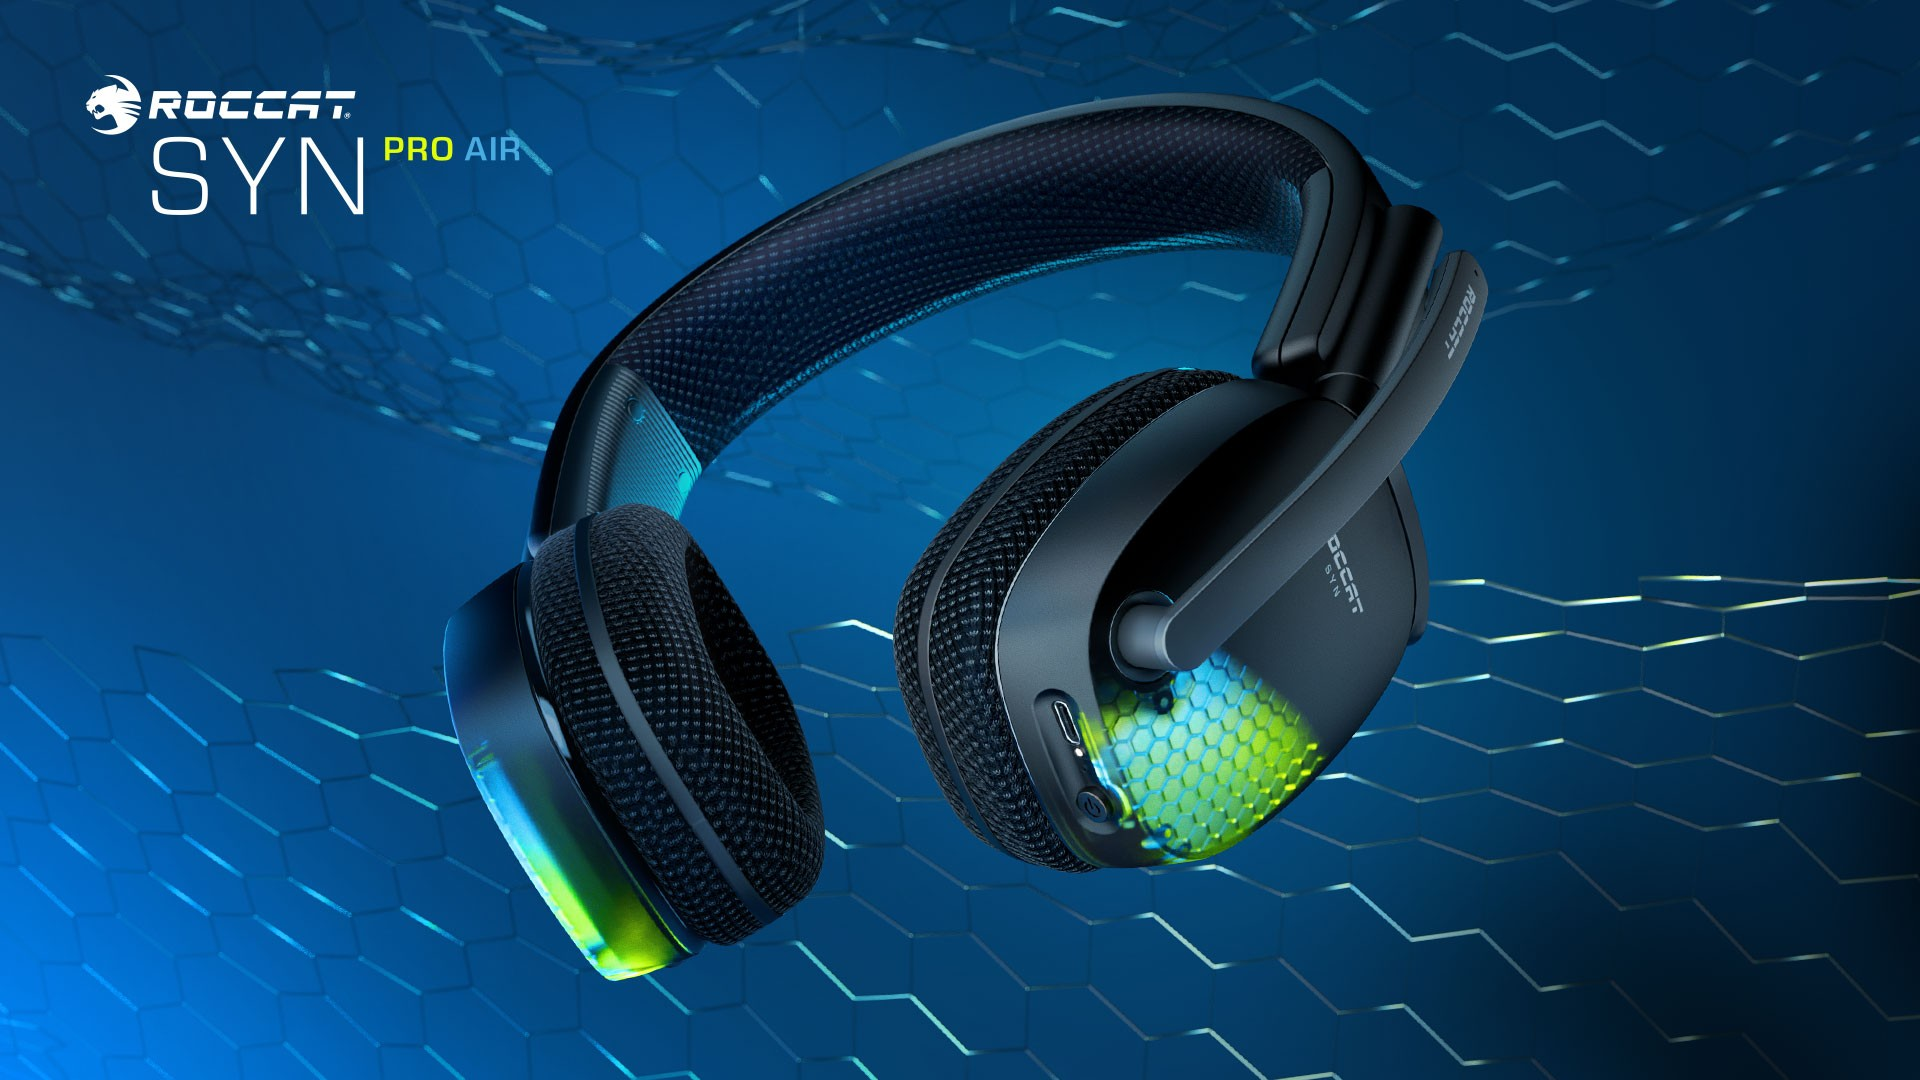 ROCCAT's New Syn Pro Air Wireless 3D Audio PC Gaming Headset Is Available Now At Australian Retailers